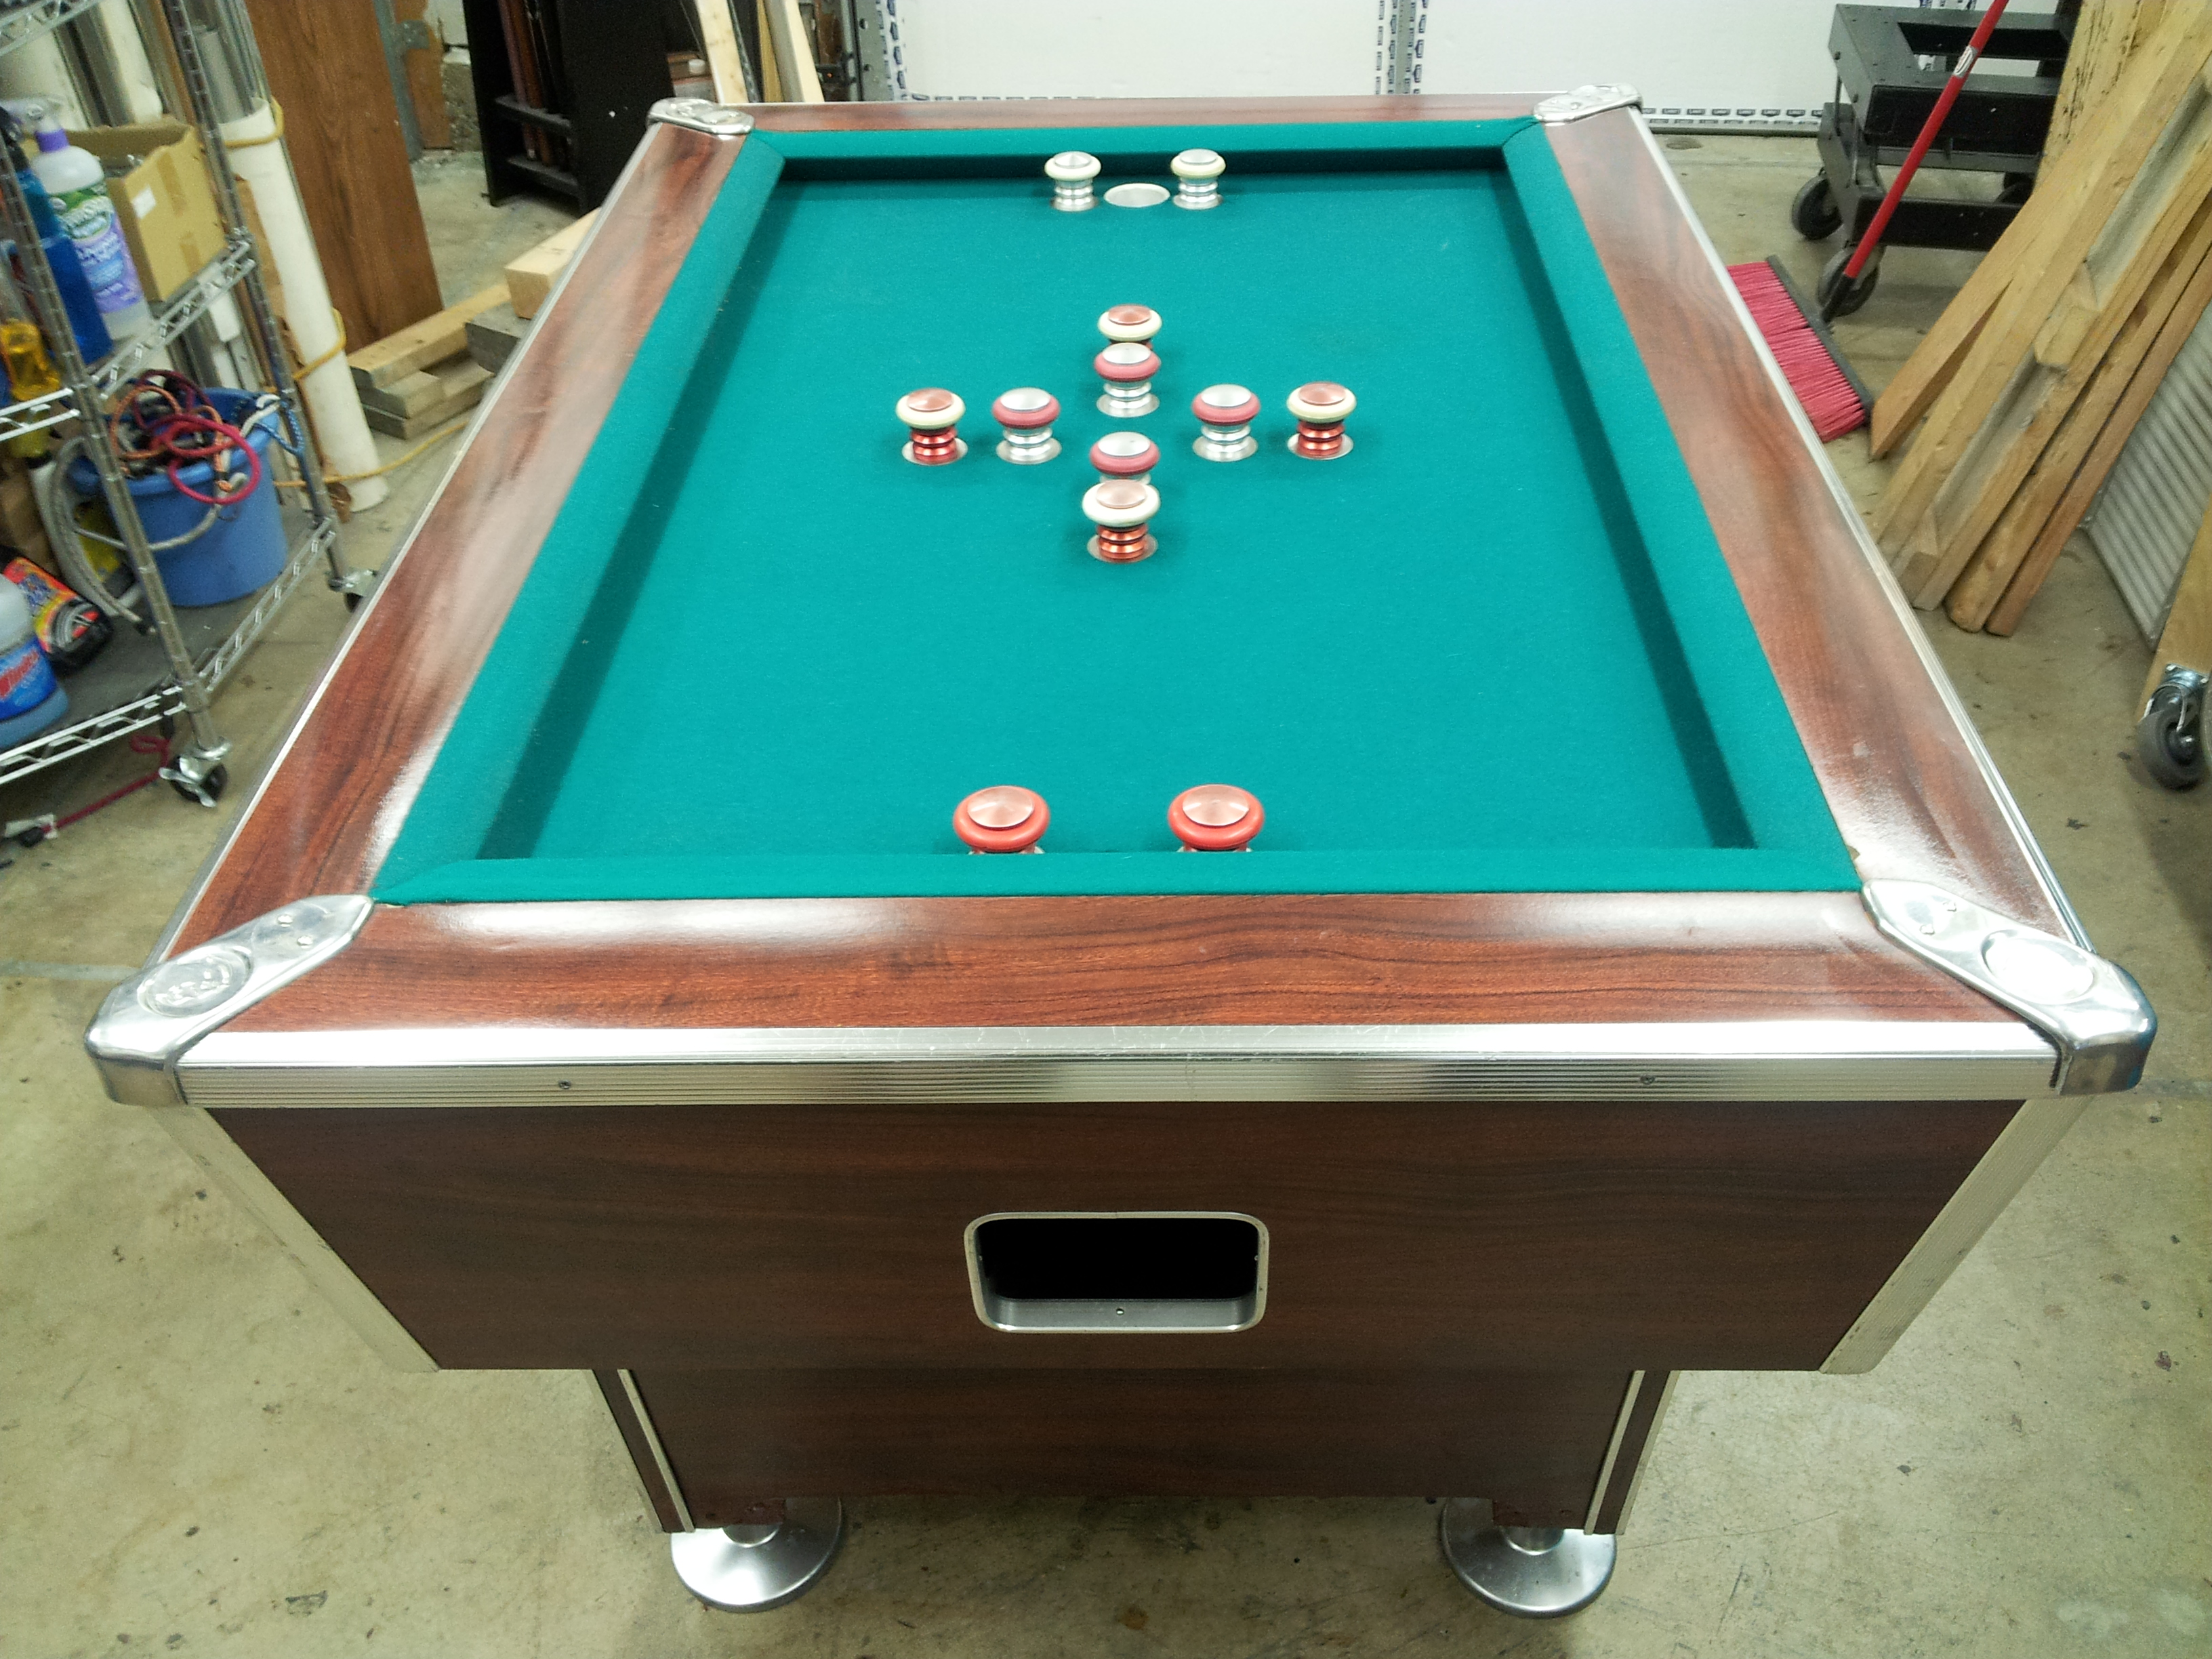 Awesome popular tips in buying a bumper pool table tobbgwt jwuhrry